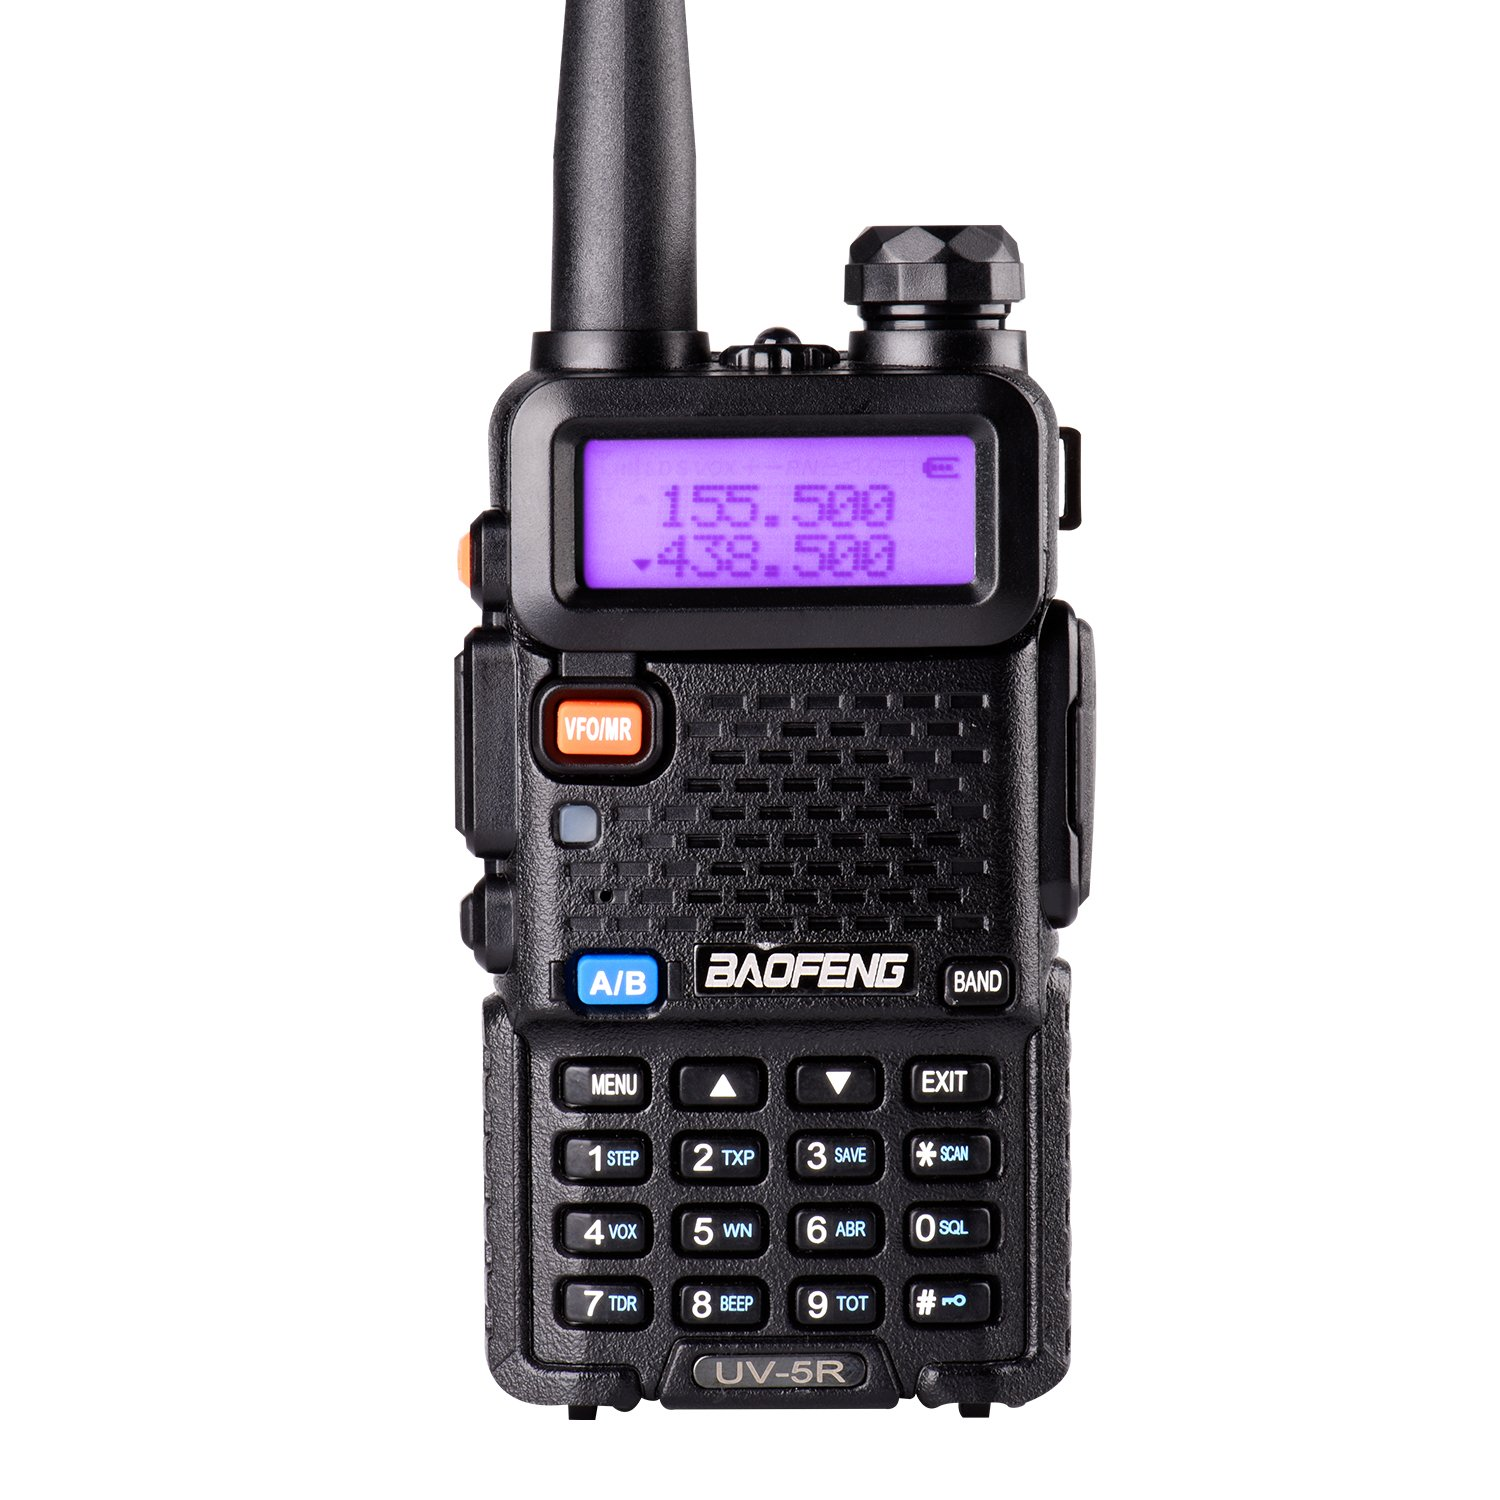 BaoFeng UV-5R Dual Band Two Way Radio Ham handheld Walkie Talkie UHF/VHF 136-174/400-480Mhz 128 Channels (Black)